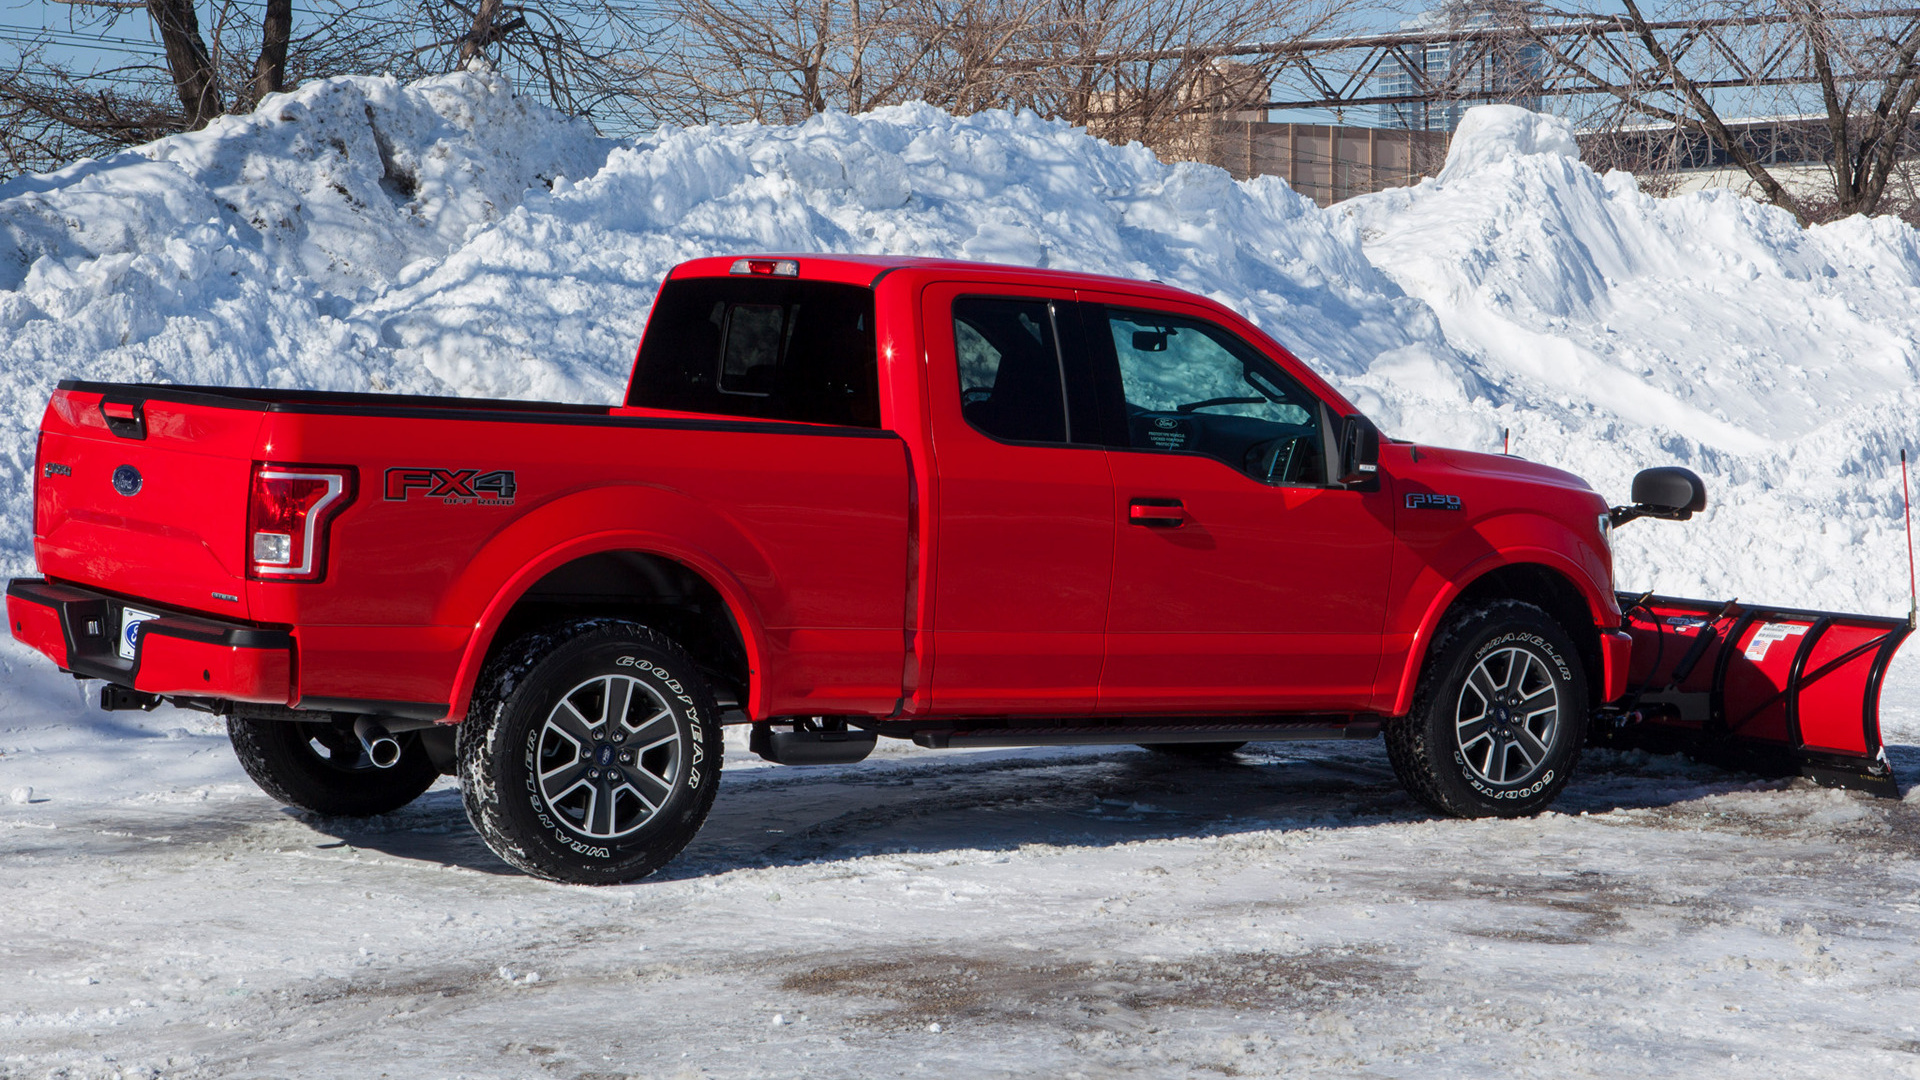 2015 Ford F150 XLT FX4 SuperCab  Wallpapers and HD Images  Car Pixel